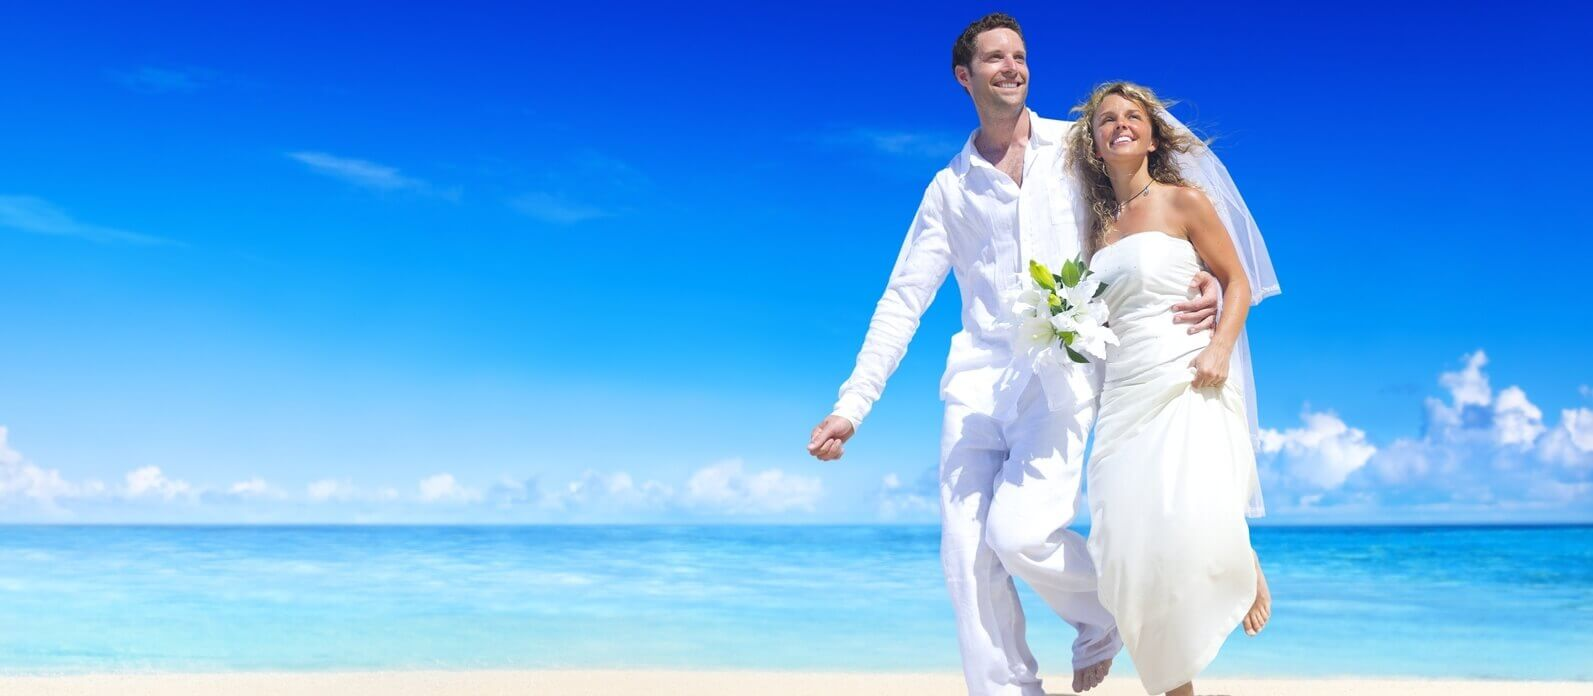 Iberostar Wedding Couple on Beach